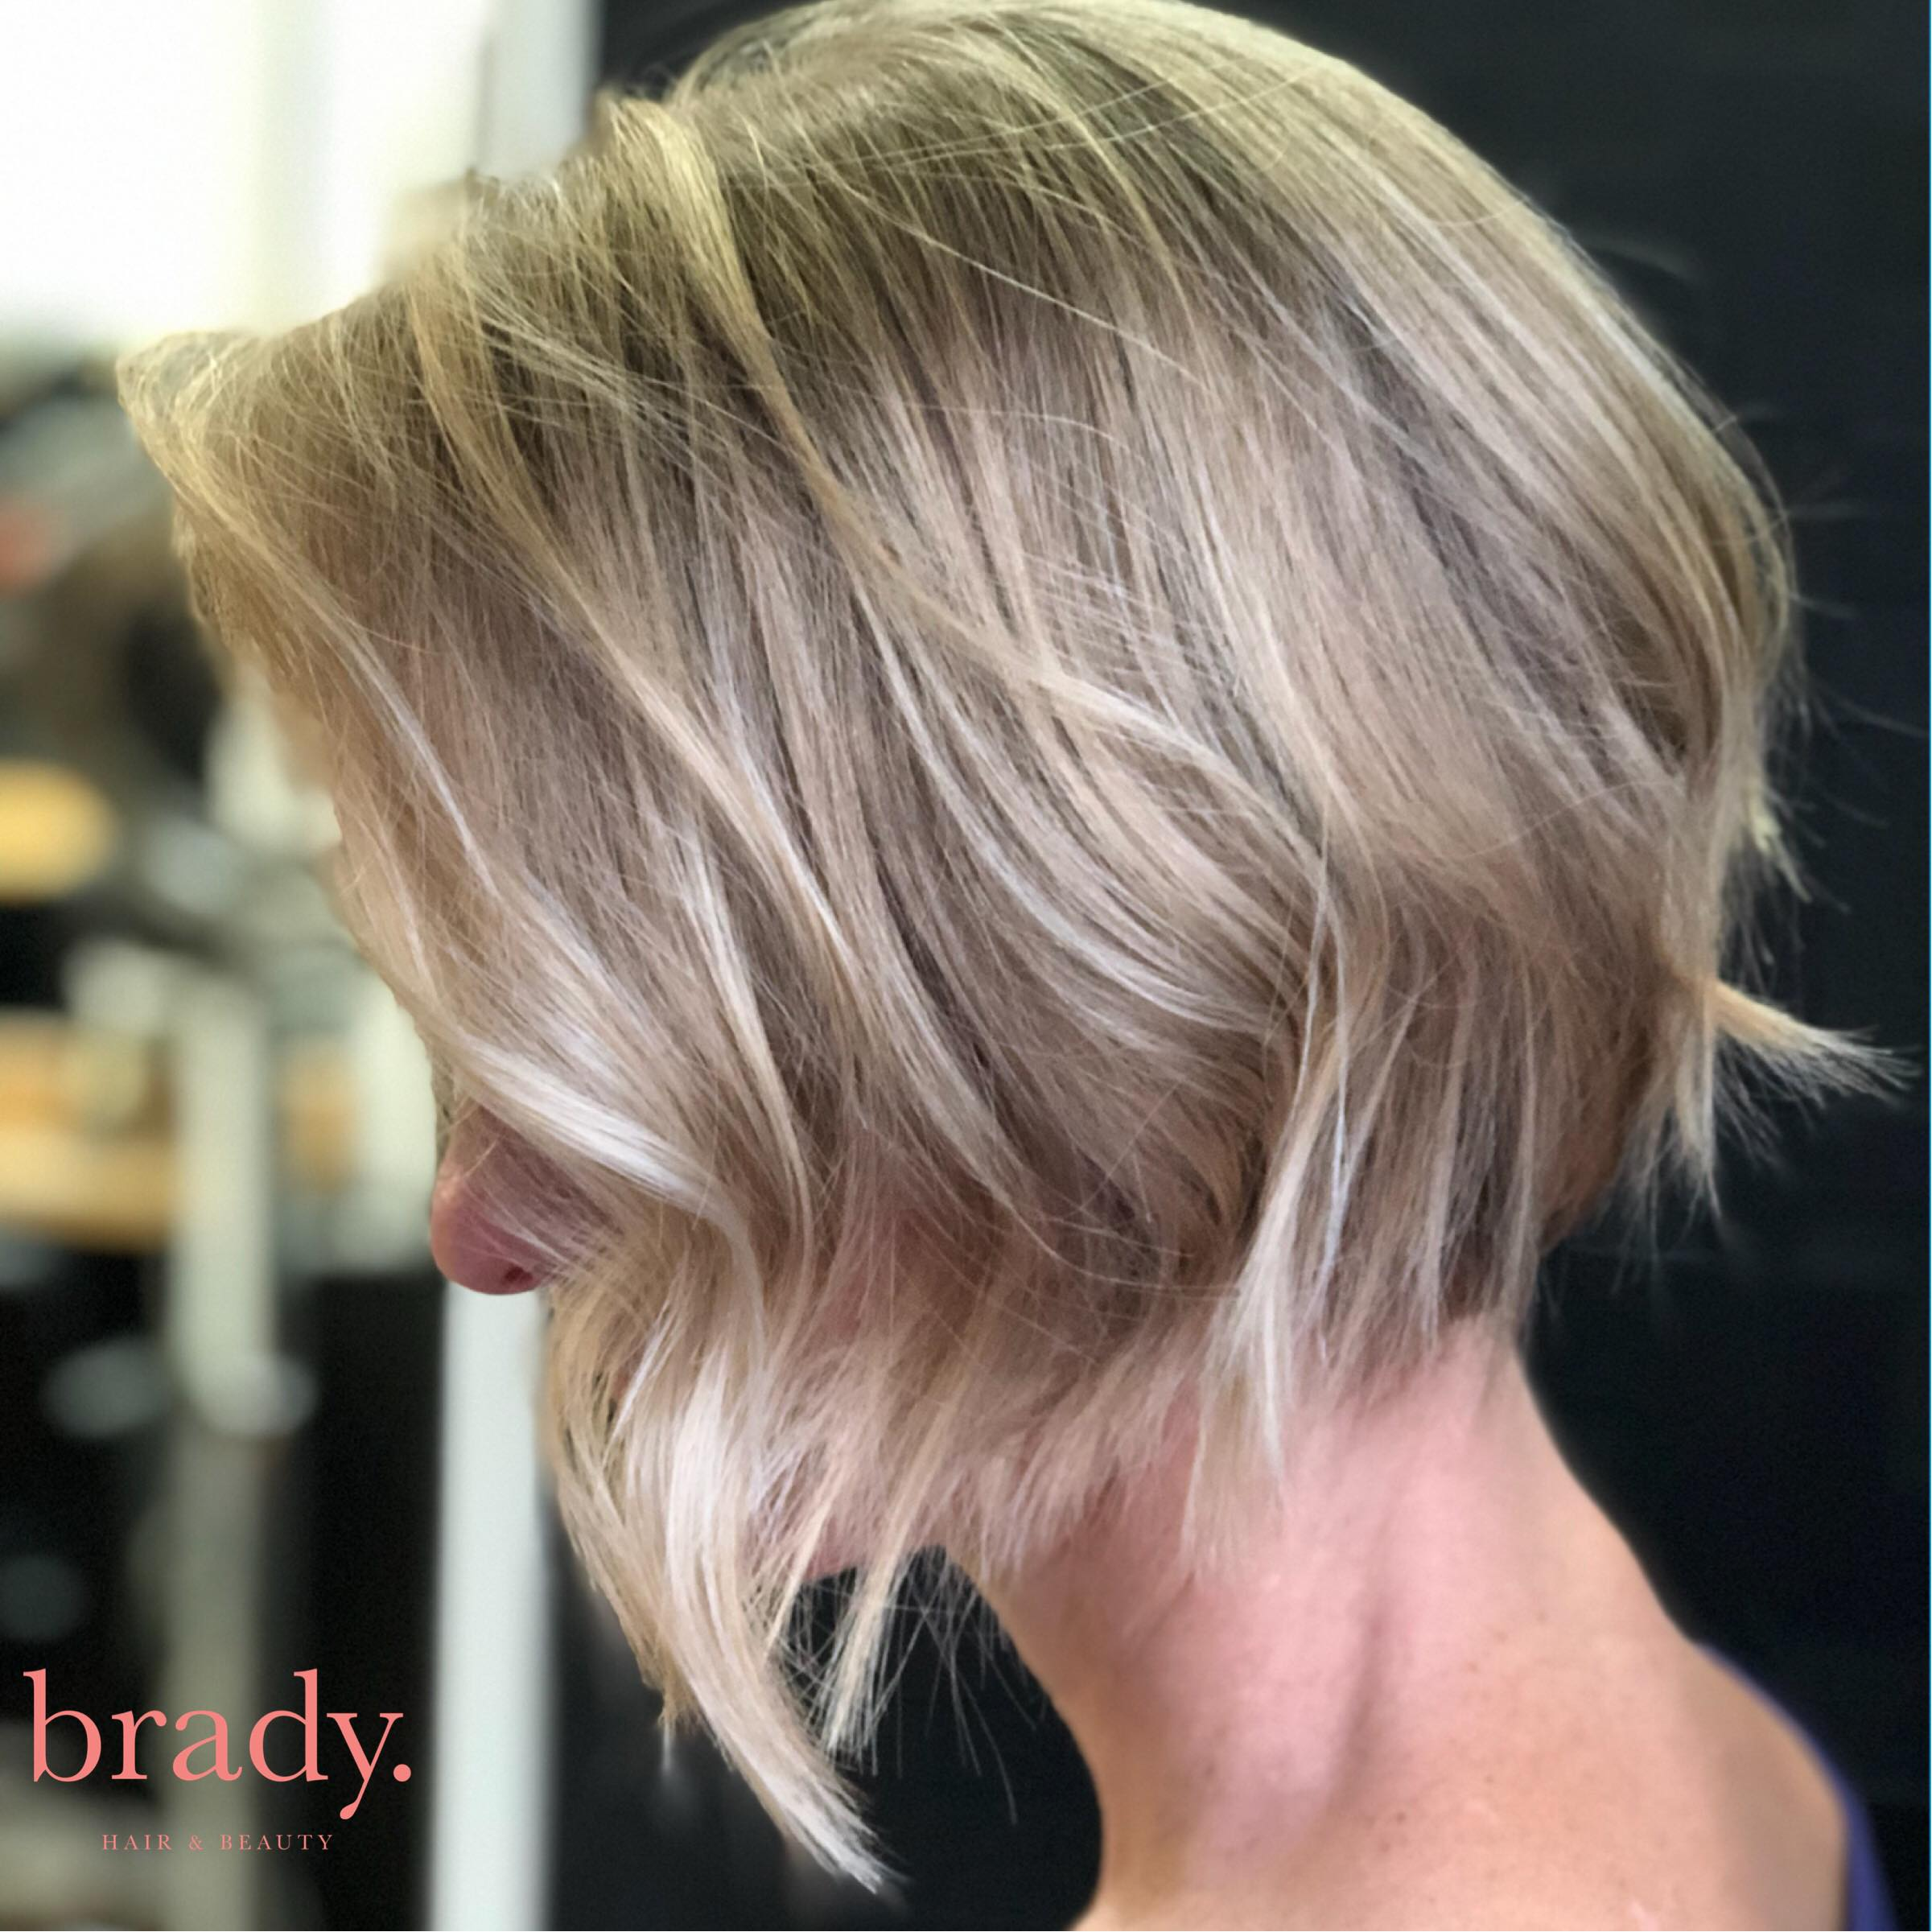 Photo of short haircut styled by Brady. Hair & Beauty, Toowong, Brisbane.